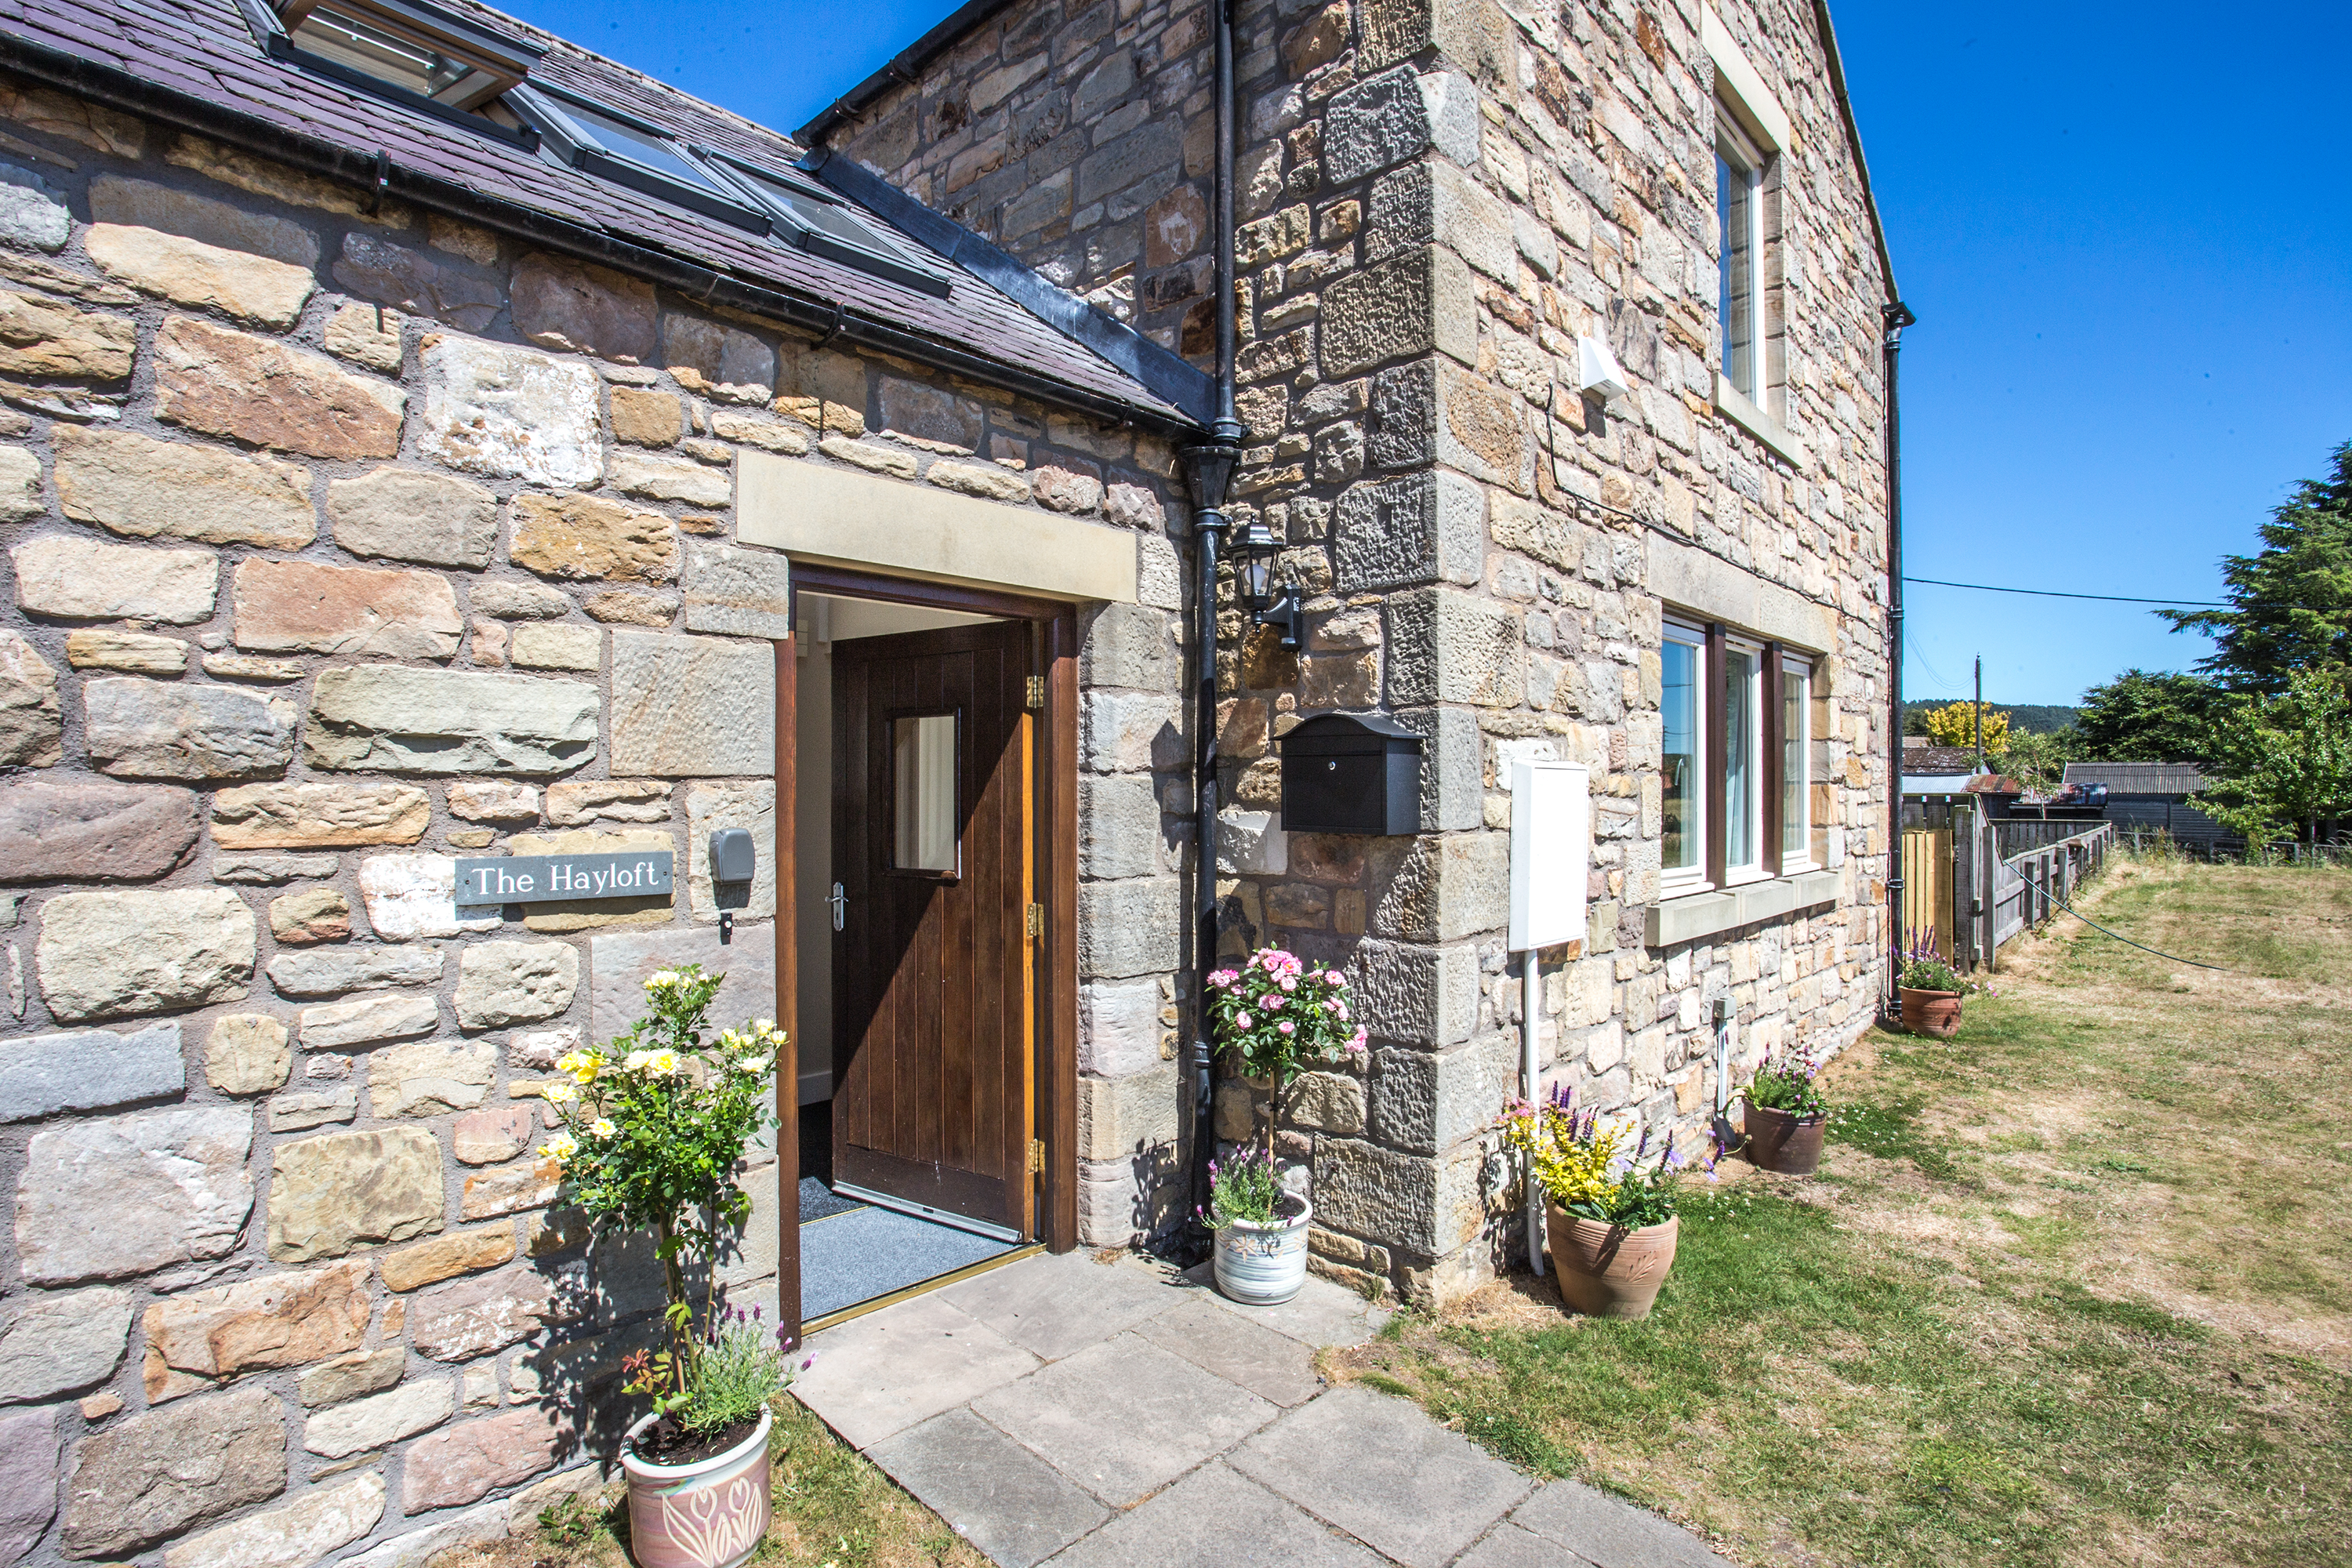 luxury accommodation in Northumberland for families, pet friendly holiday cottages in Chatton near a pub